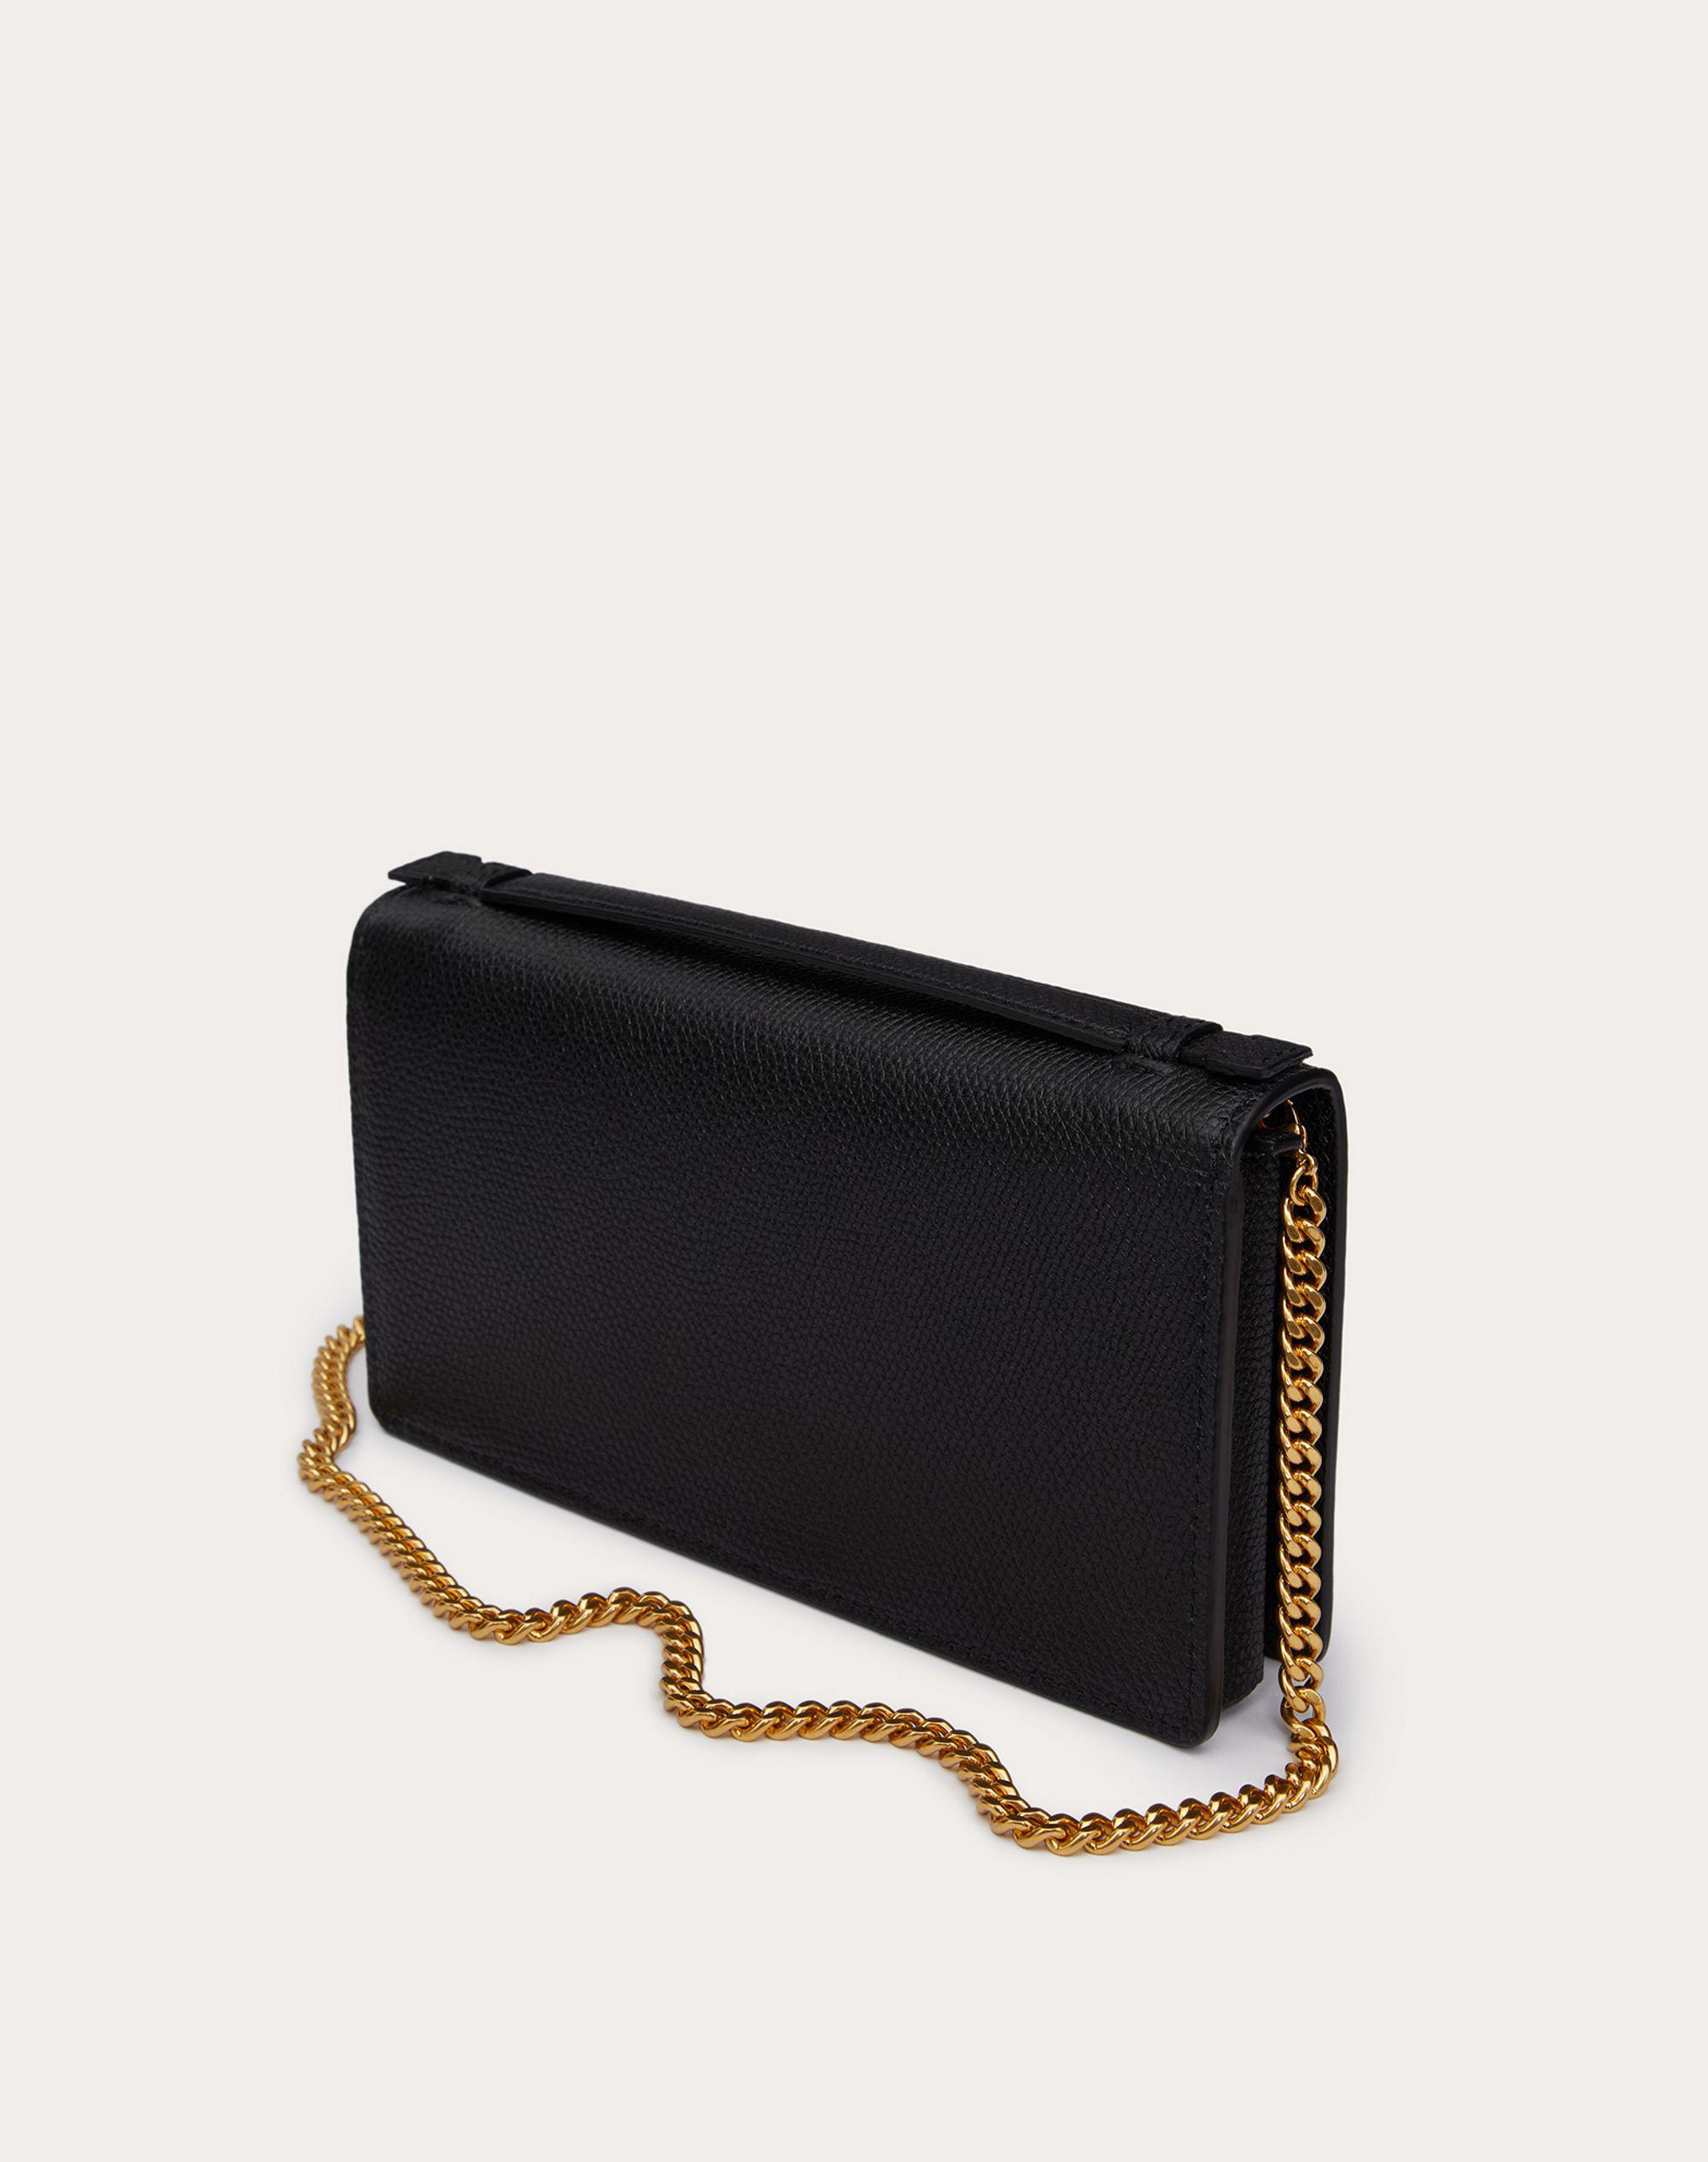 VLOGO SIGNATURE GRAINY CALFSKIN WALLET WITH CHAIN 2